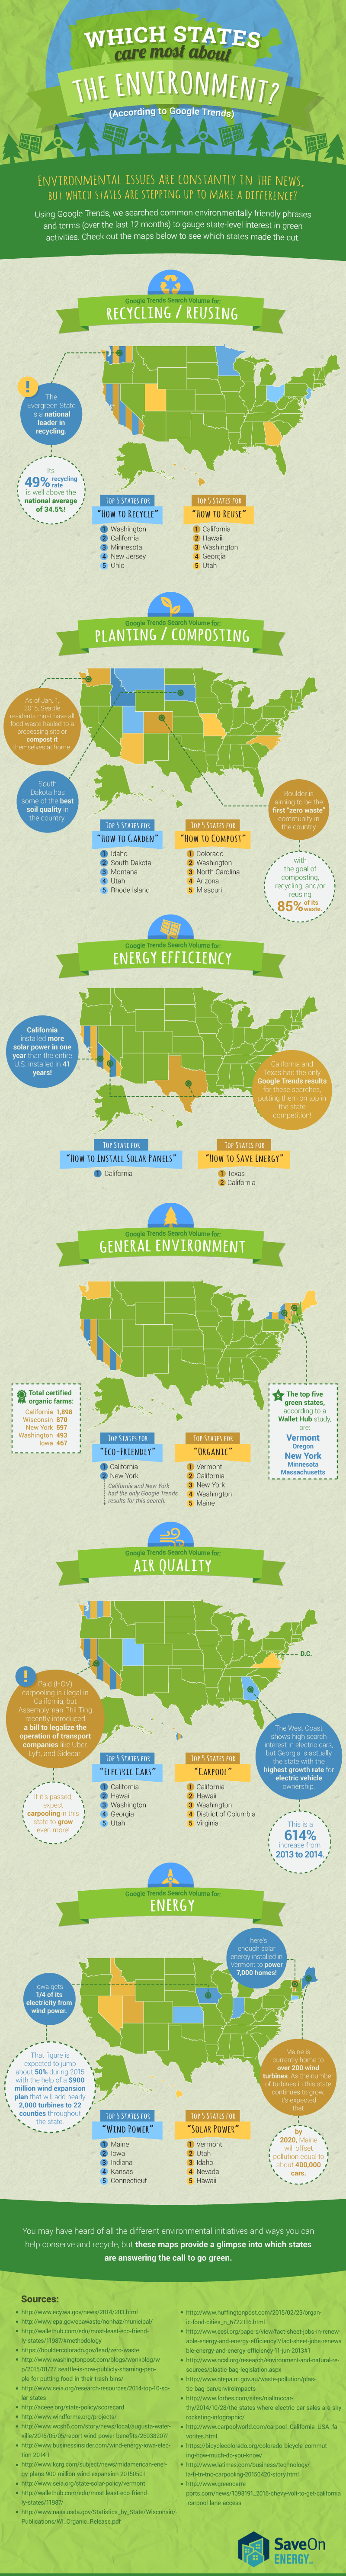 which states care about the planet infographic